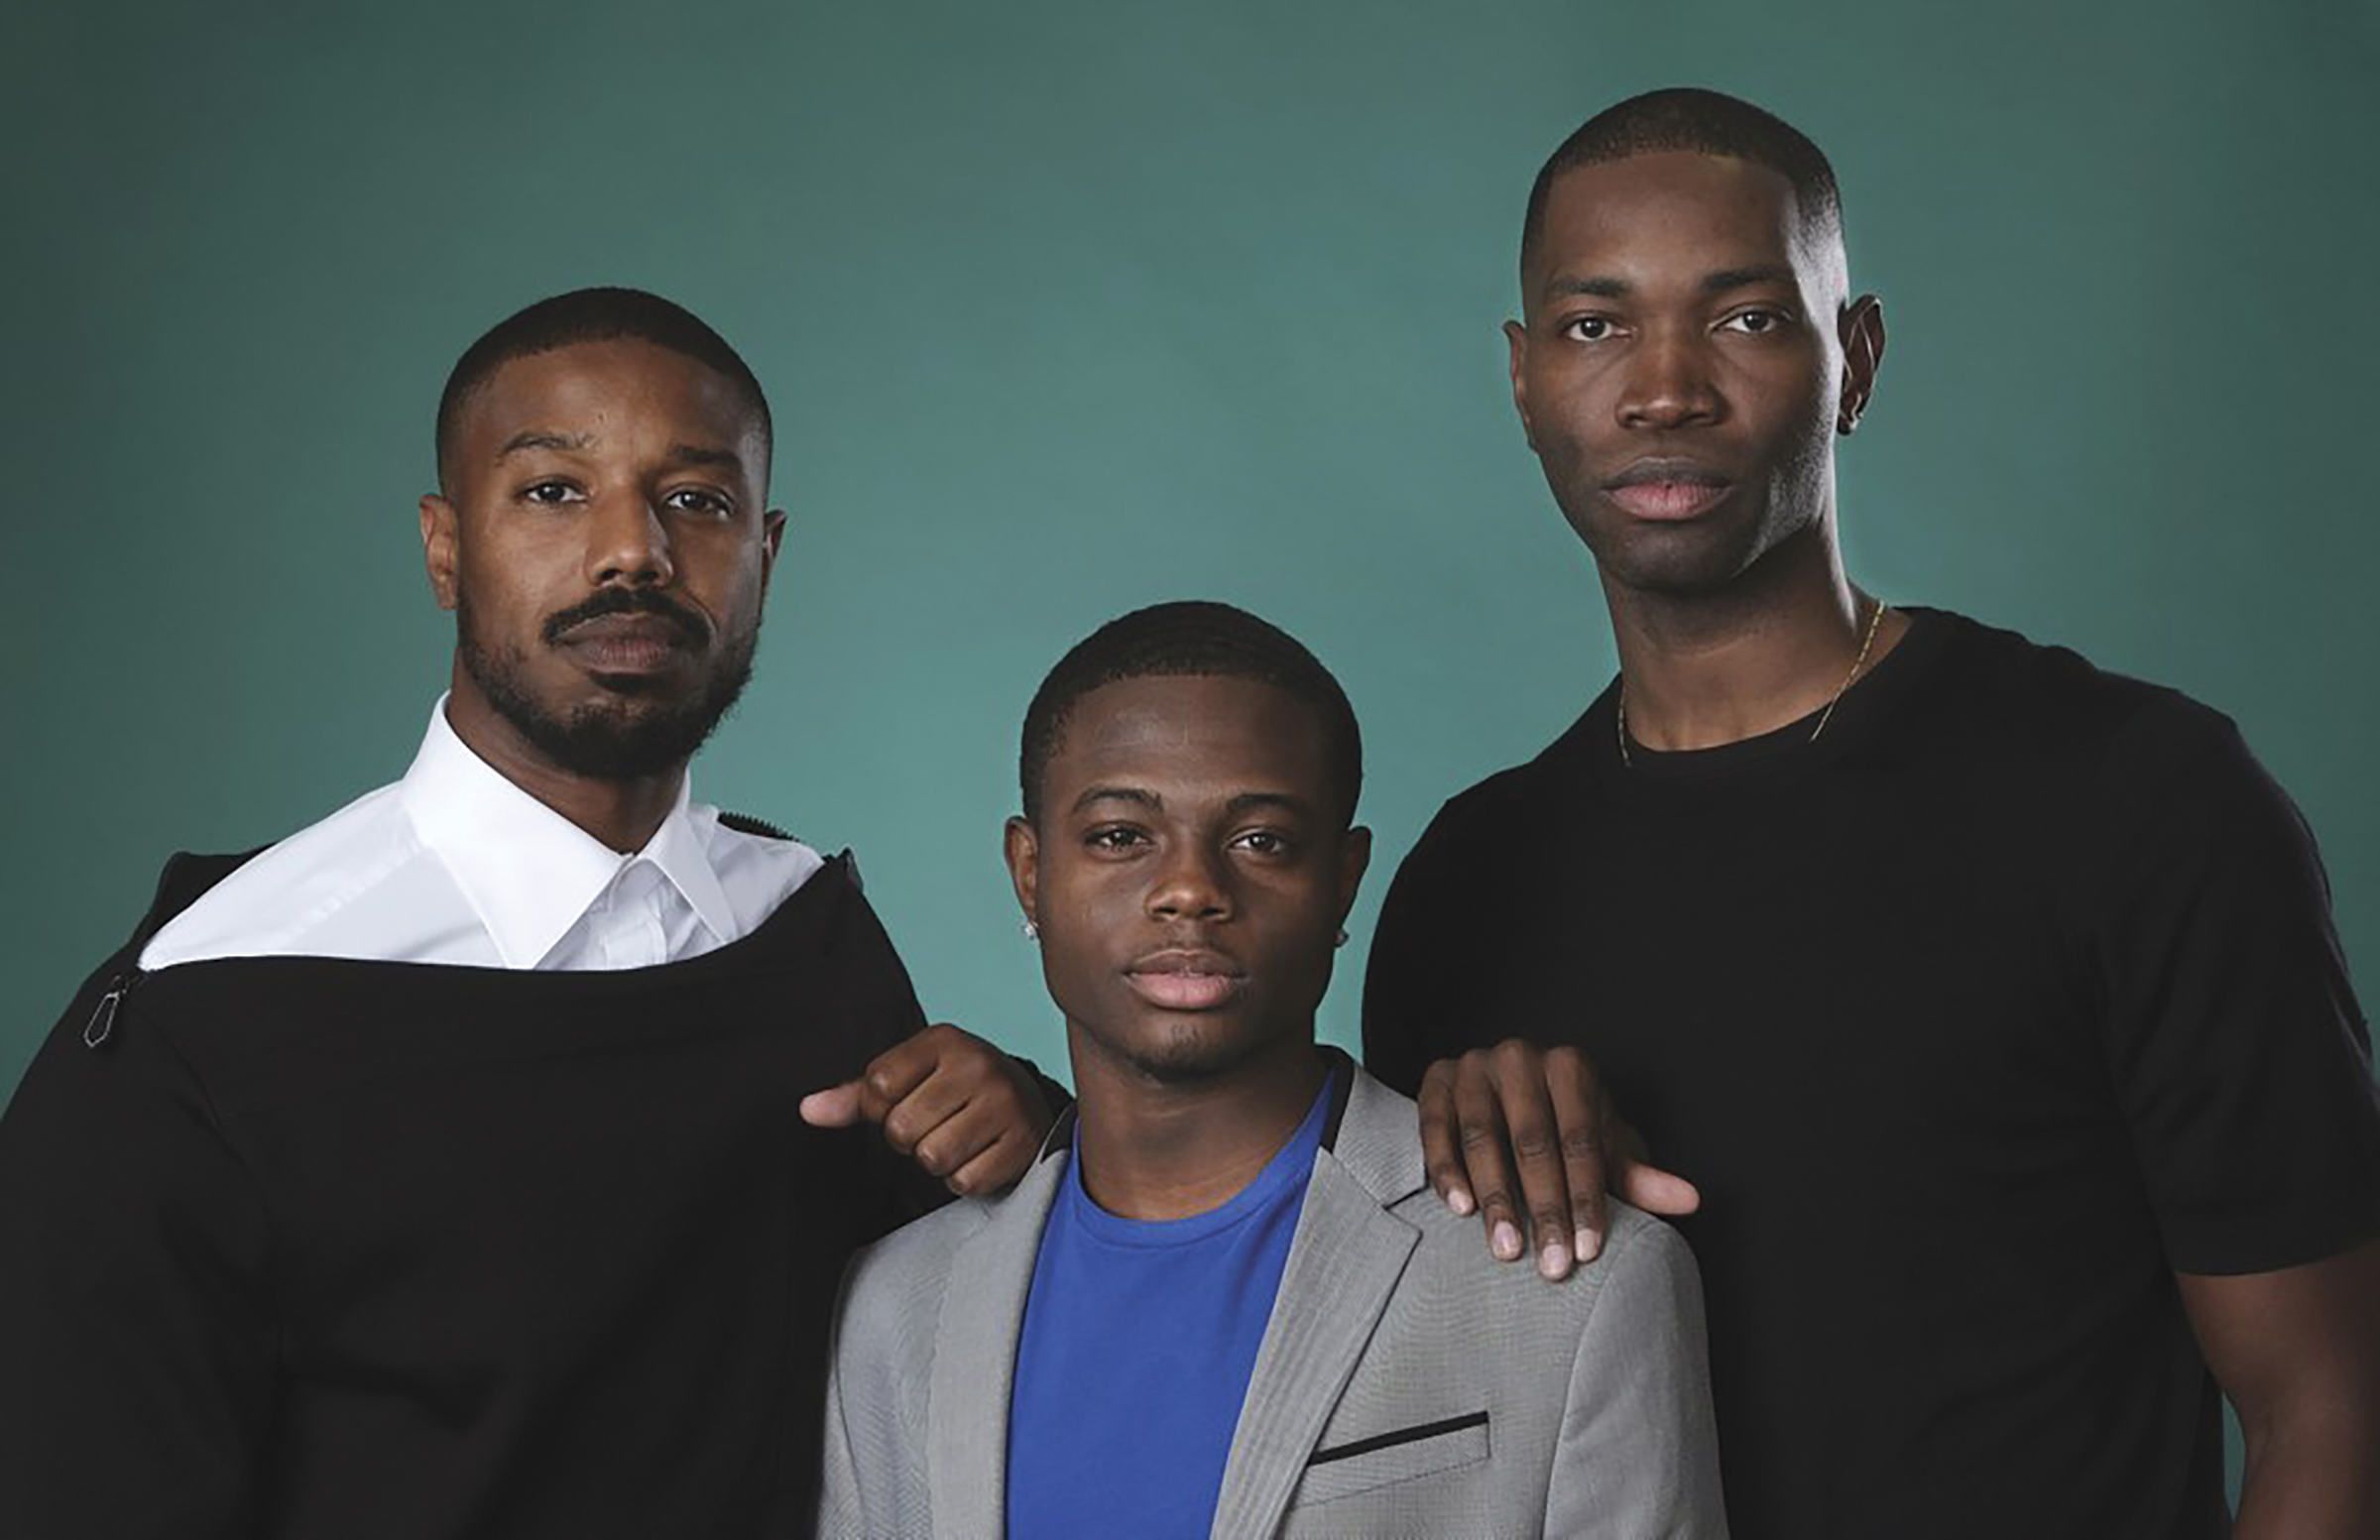 Tarell Alvin McCraney, right, creator/executive producer of the OWN series